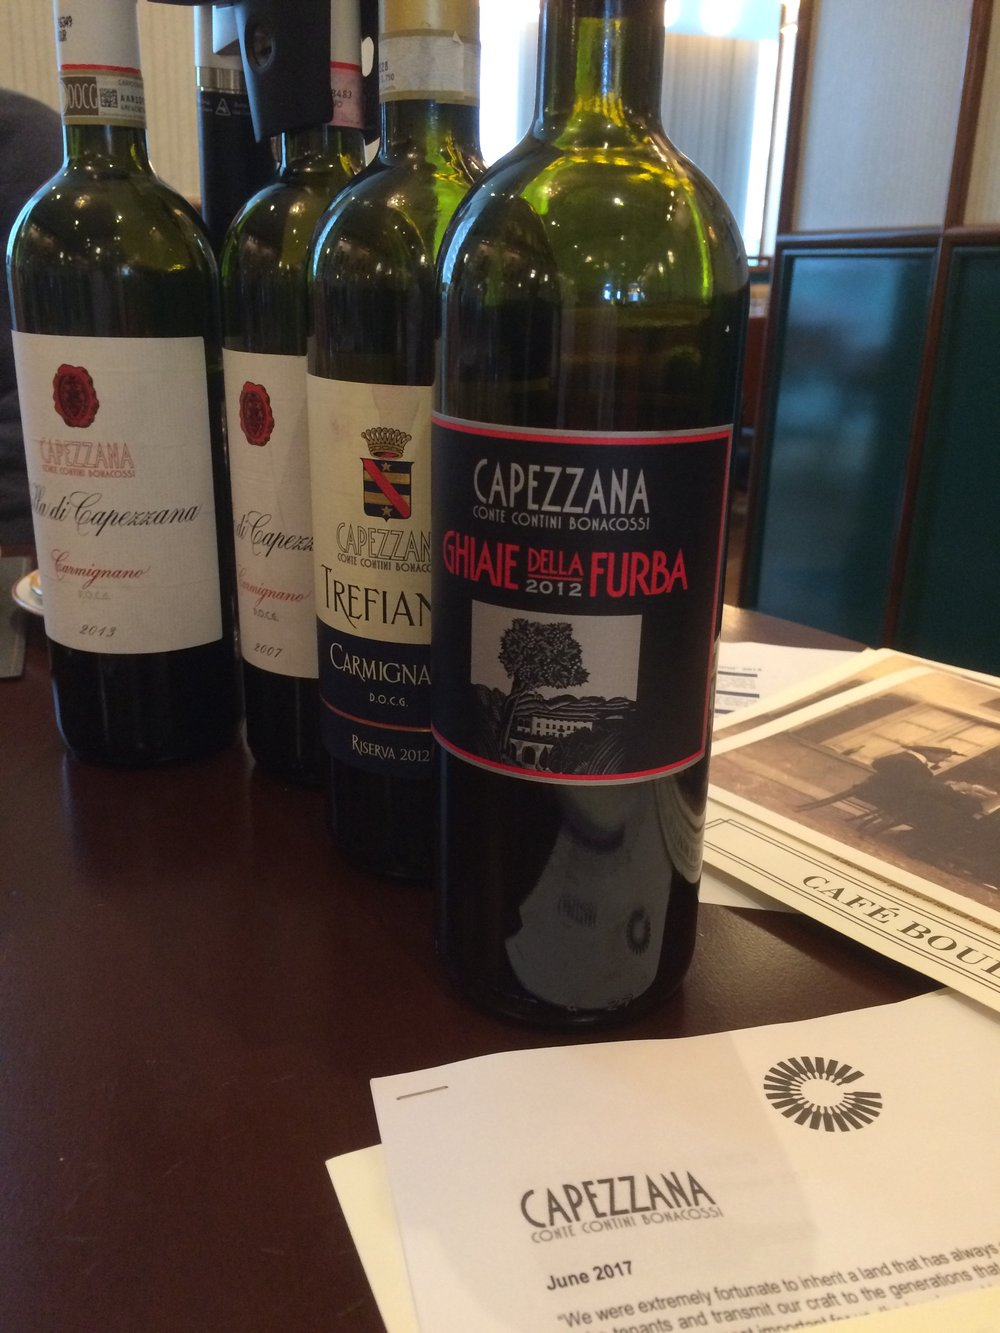 The Family Wines of Capezzna Conte Contini Bonacossi. Christopher Sealy